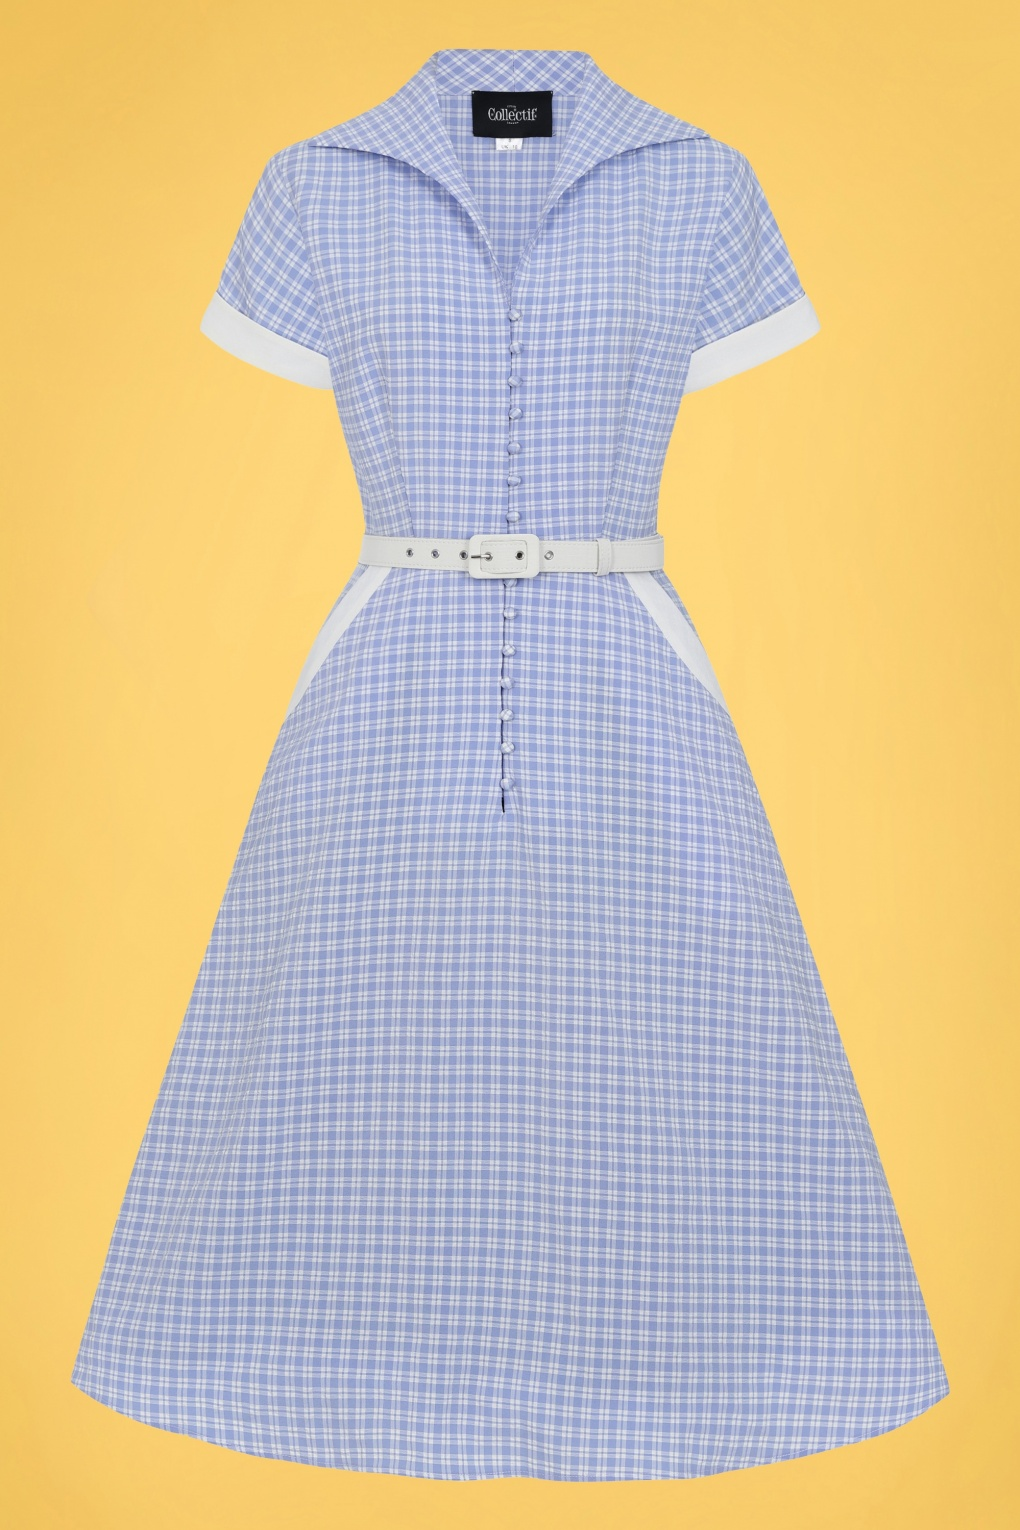 Vintage Shirtwaist Dress History 50s Marjorie Contrast Swing Dress in Blue and White £24.95 AT vintagedancer.com